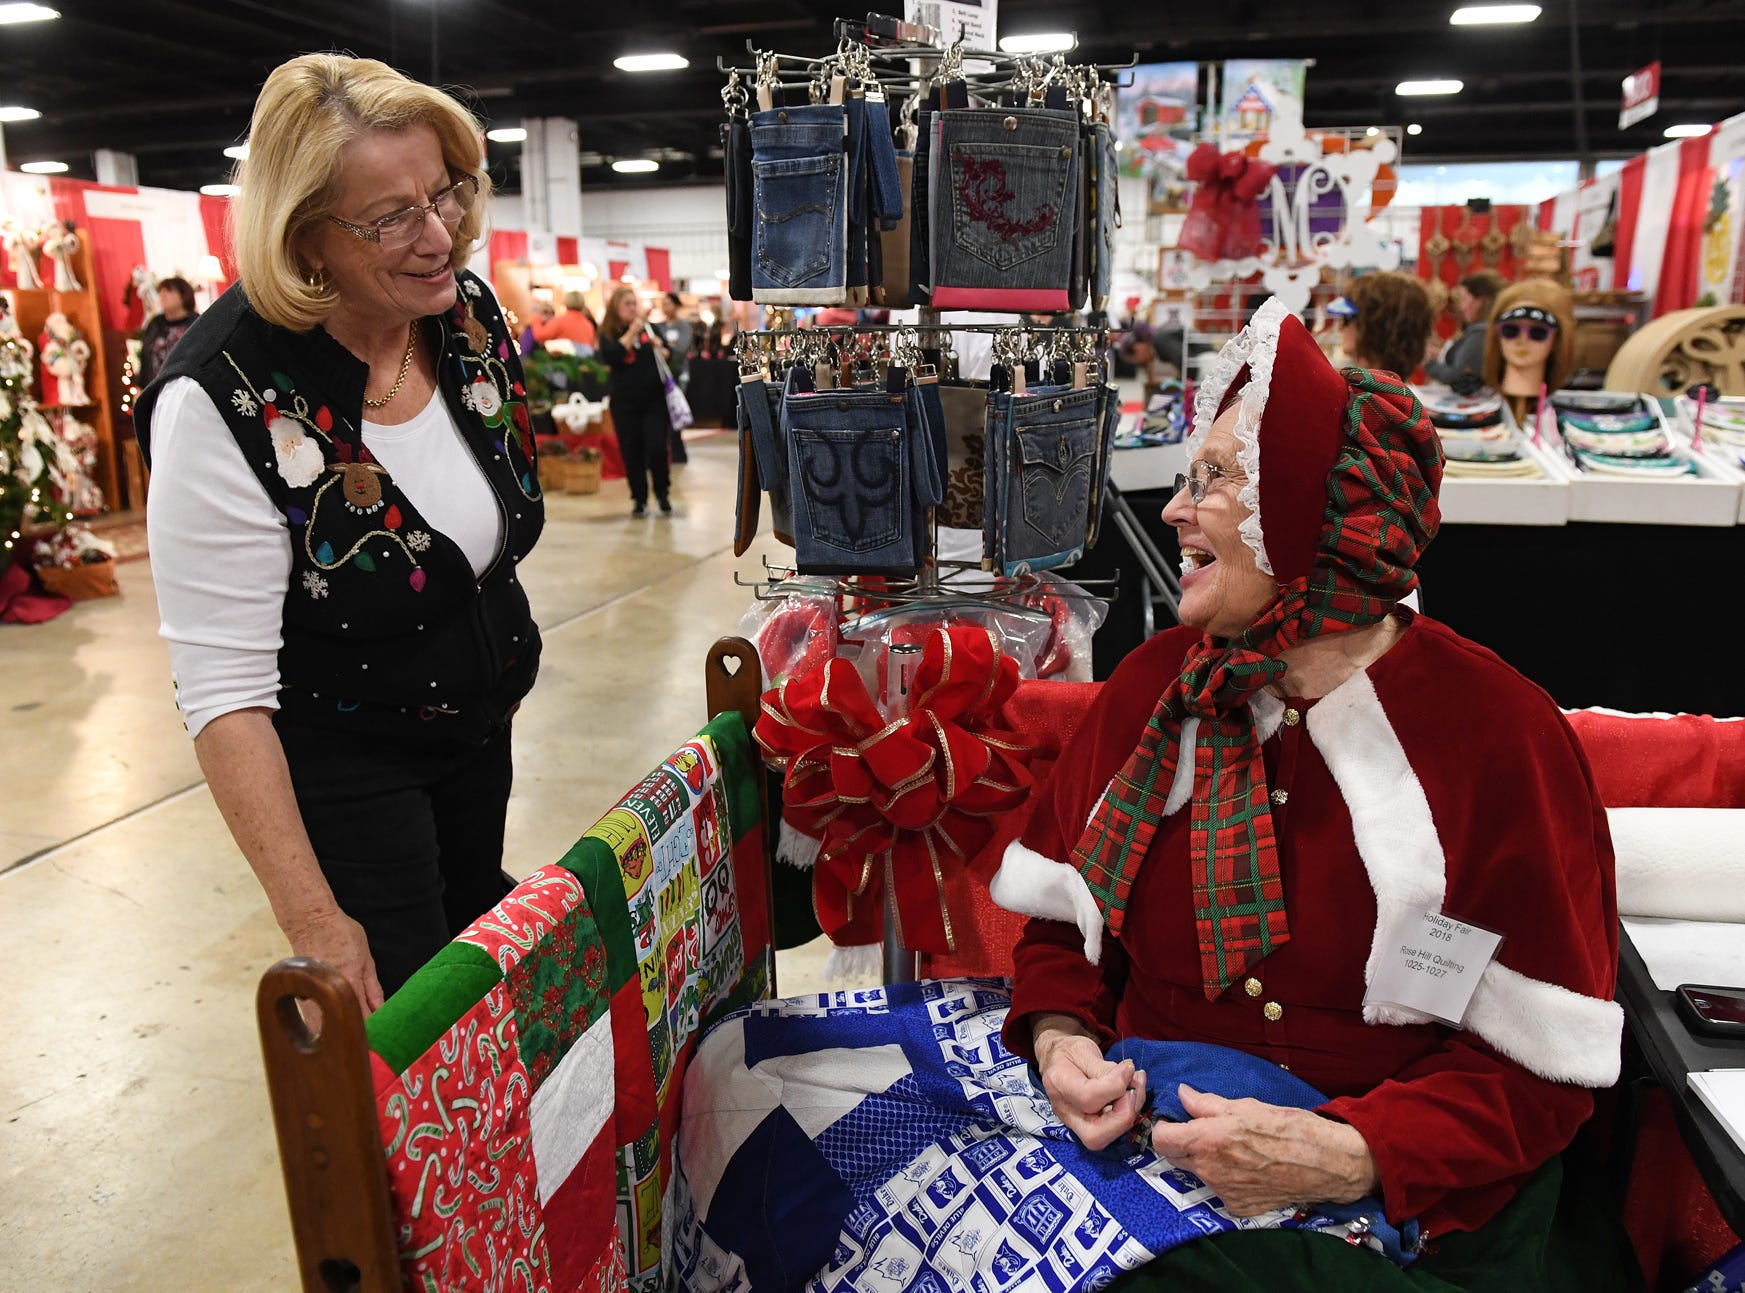 Ella Lockhart, right, talks with Cindi Ballard while quilting in her booth at the 48th annual Holiday Fair at the Greenville Convention Center Thursday, November 29,  2018.